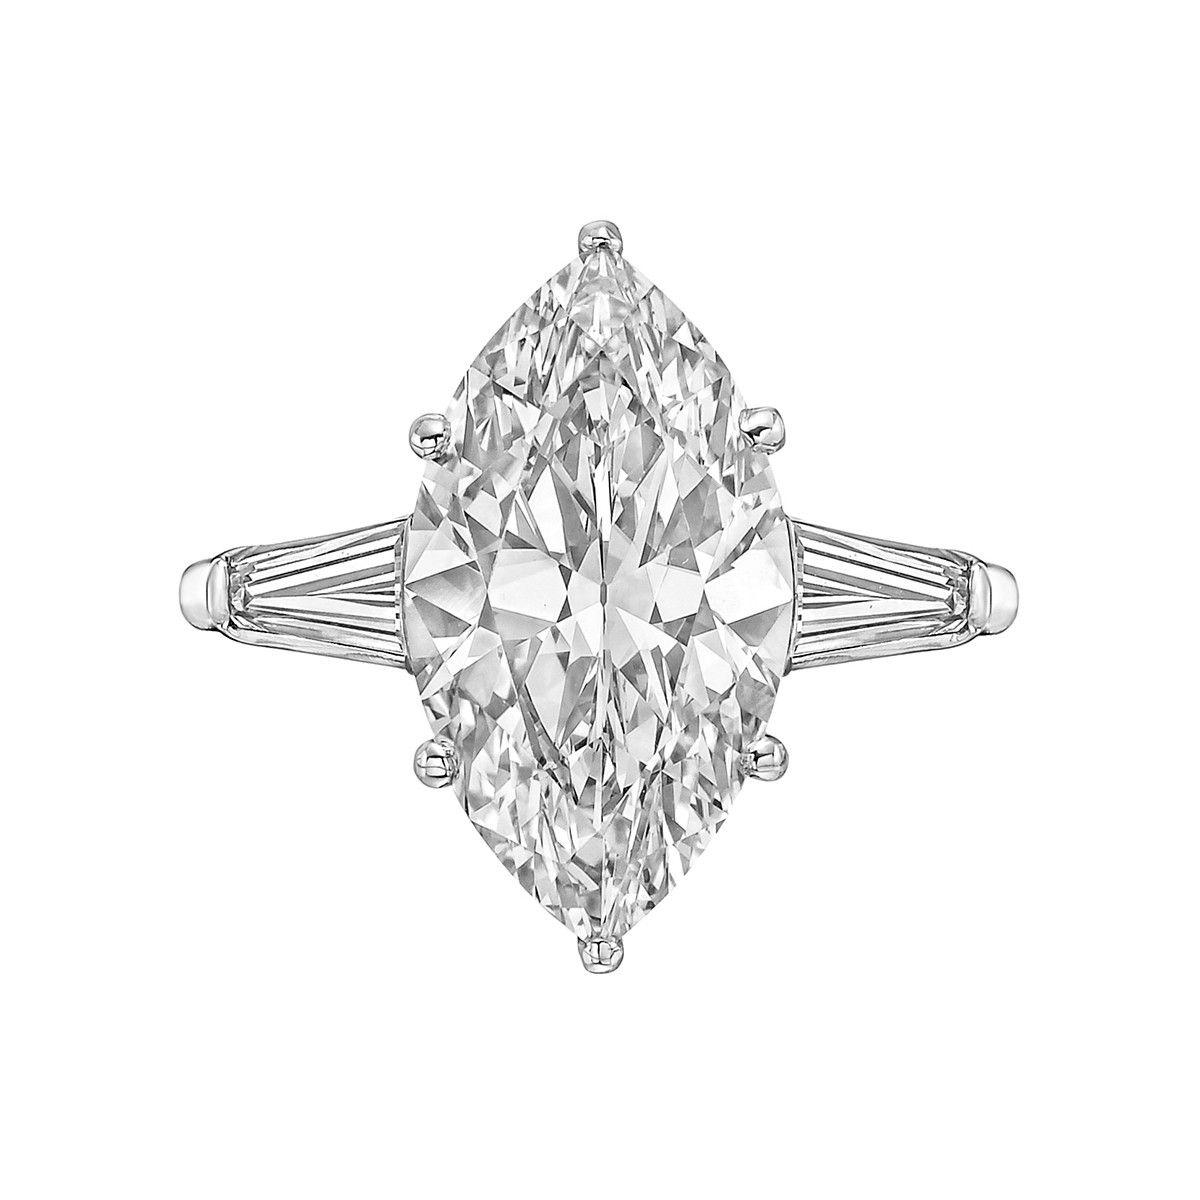 5.09 Carat Marquise-Cut Diamond Ring